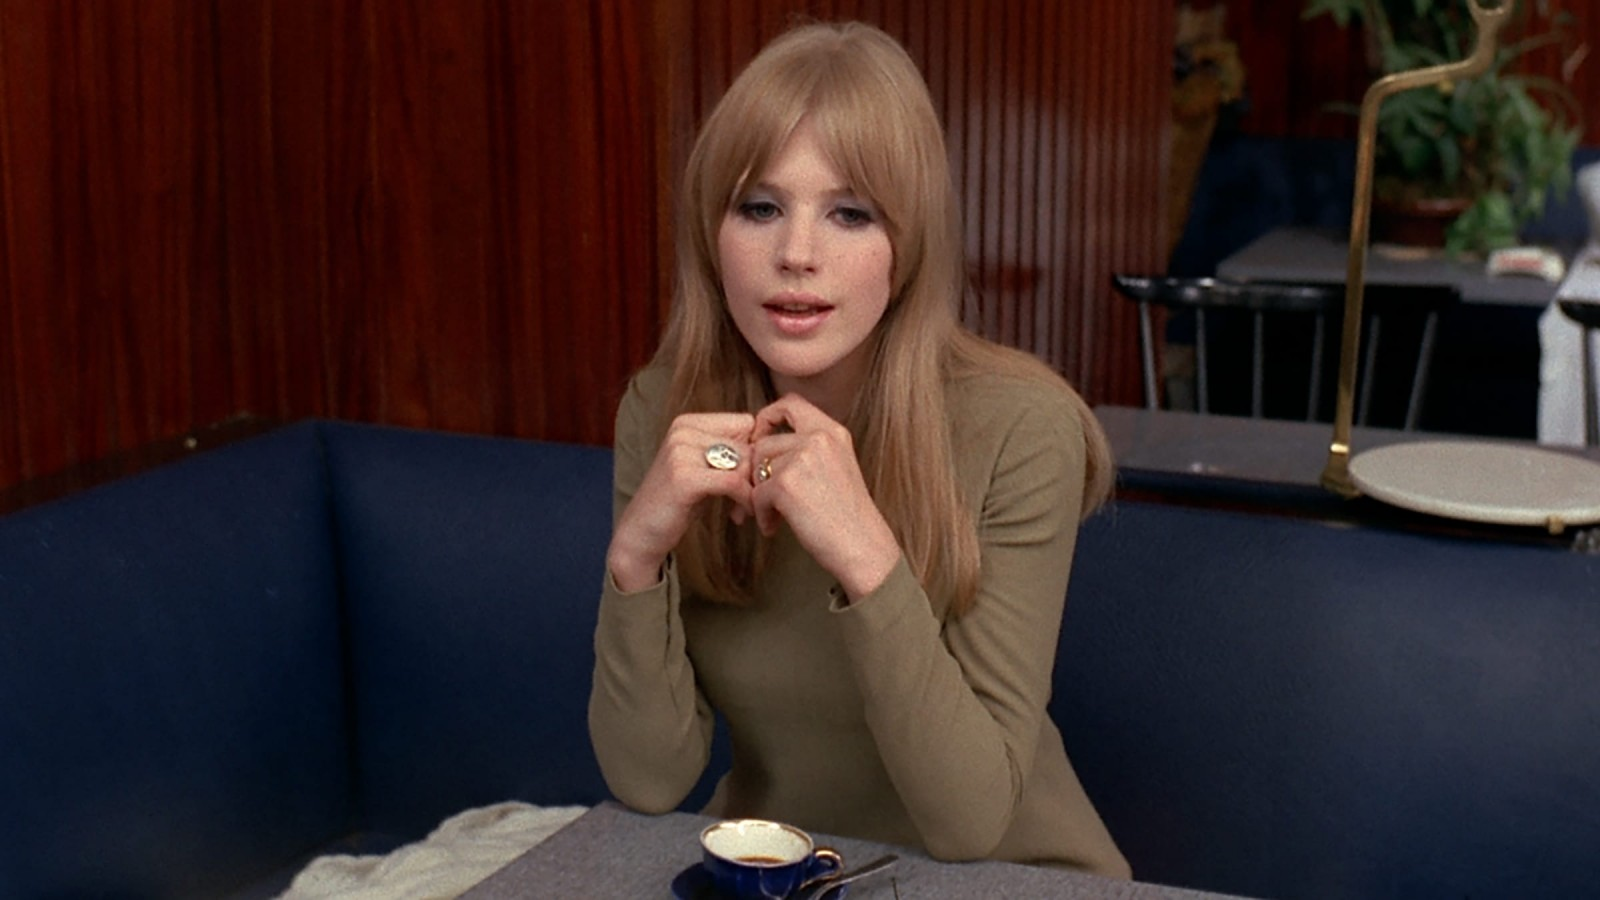 Marianne Faithfull Brings on the Heartbreak in Made in U.S.A